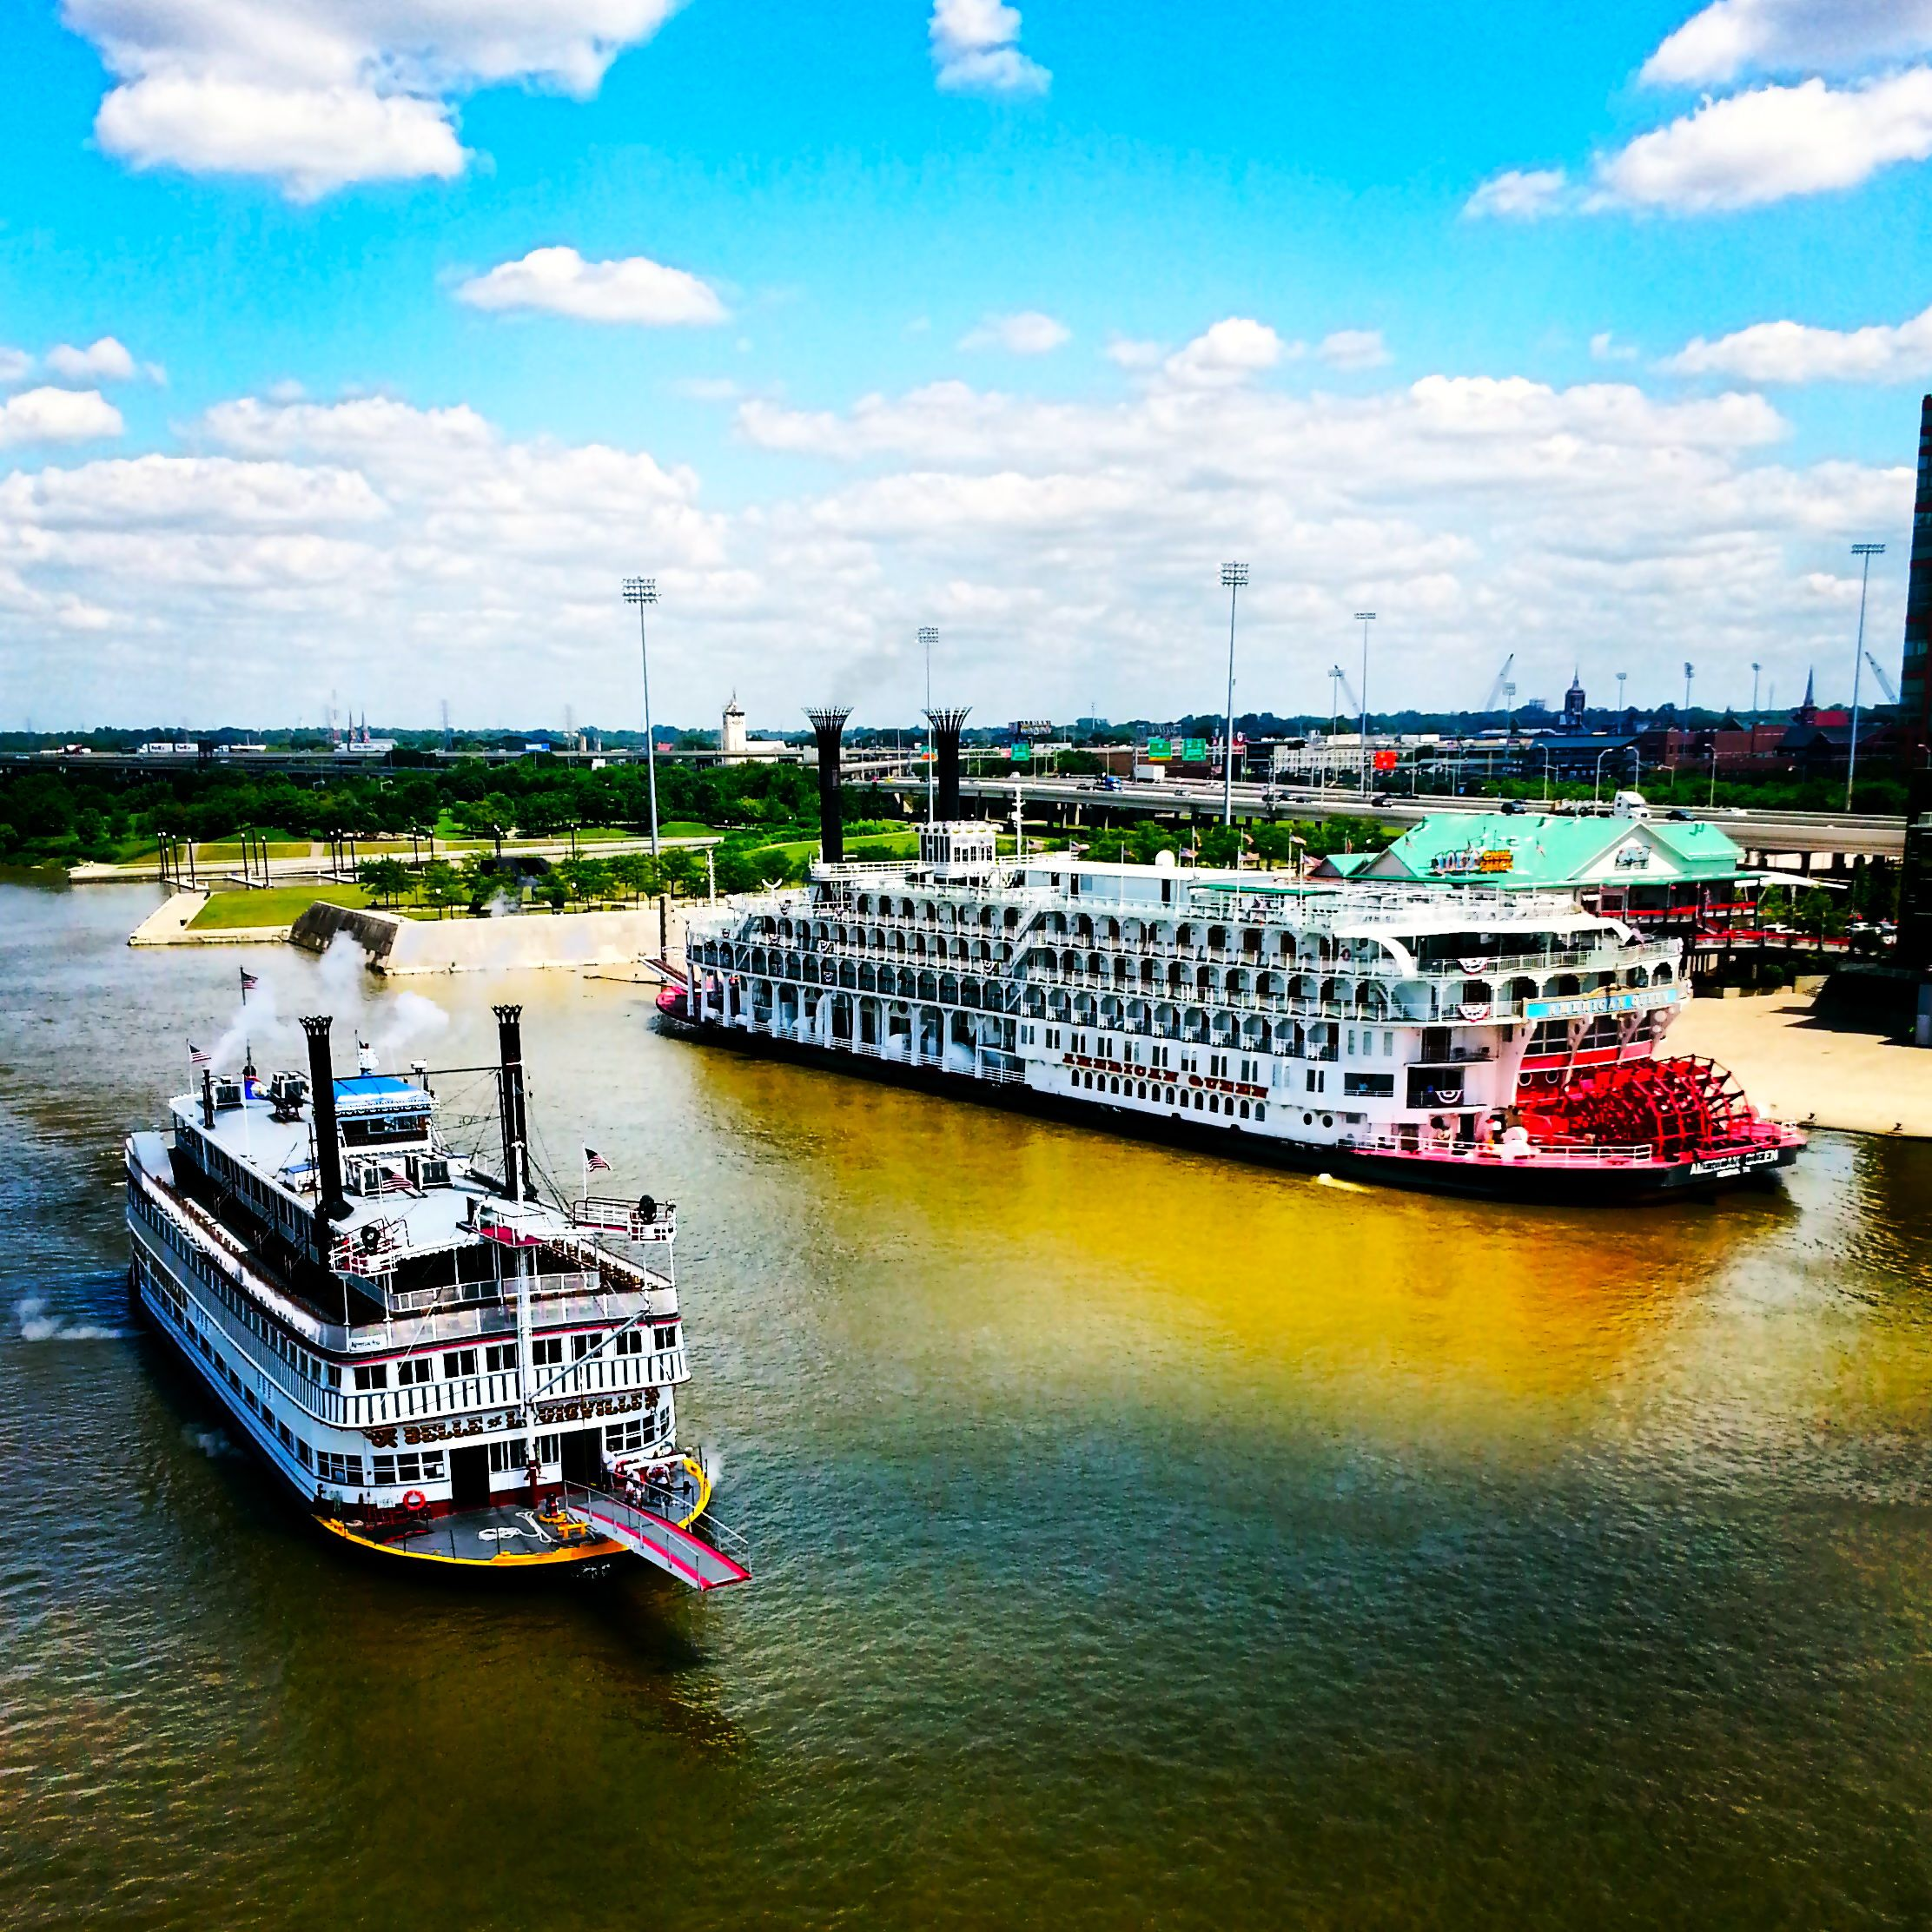 The Belle Of Louisville Cruising Passed The American Queen